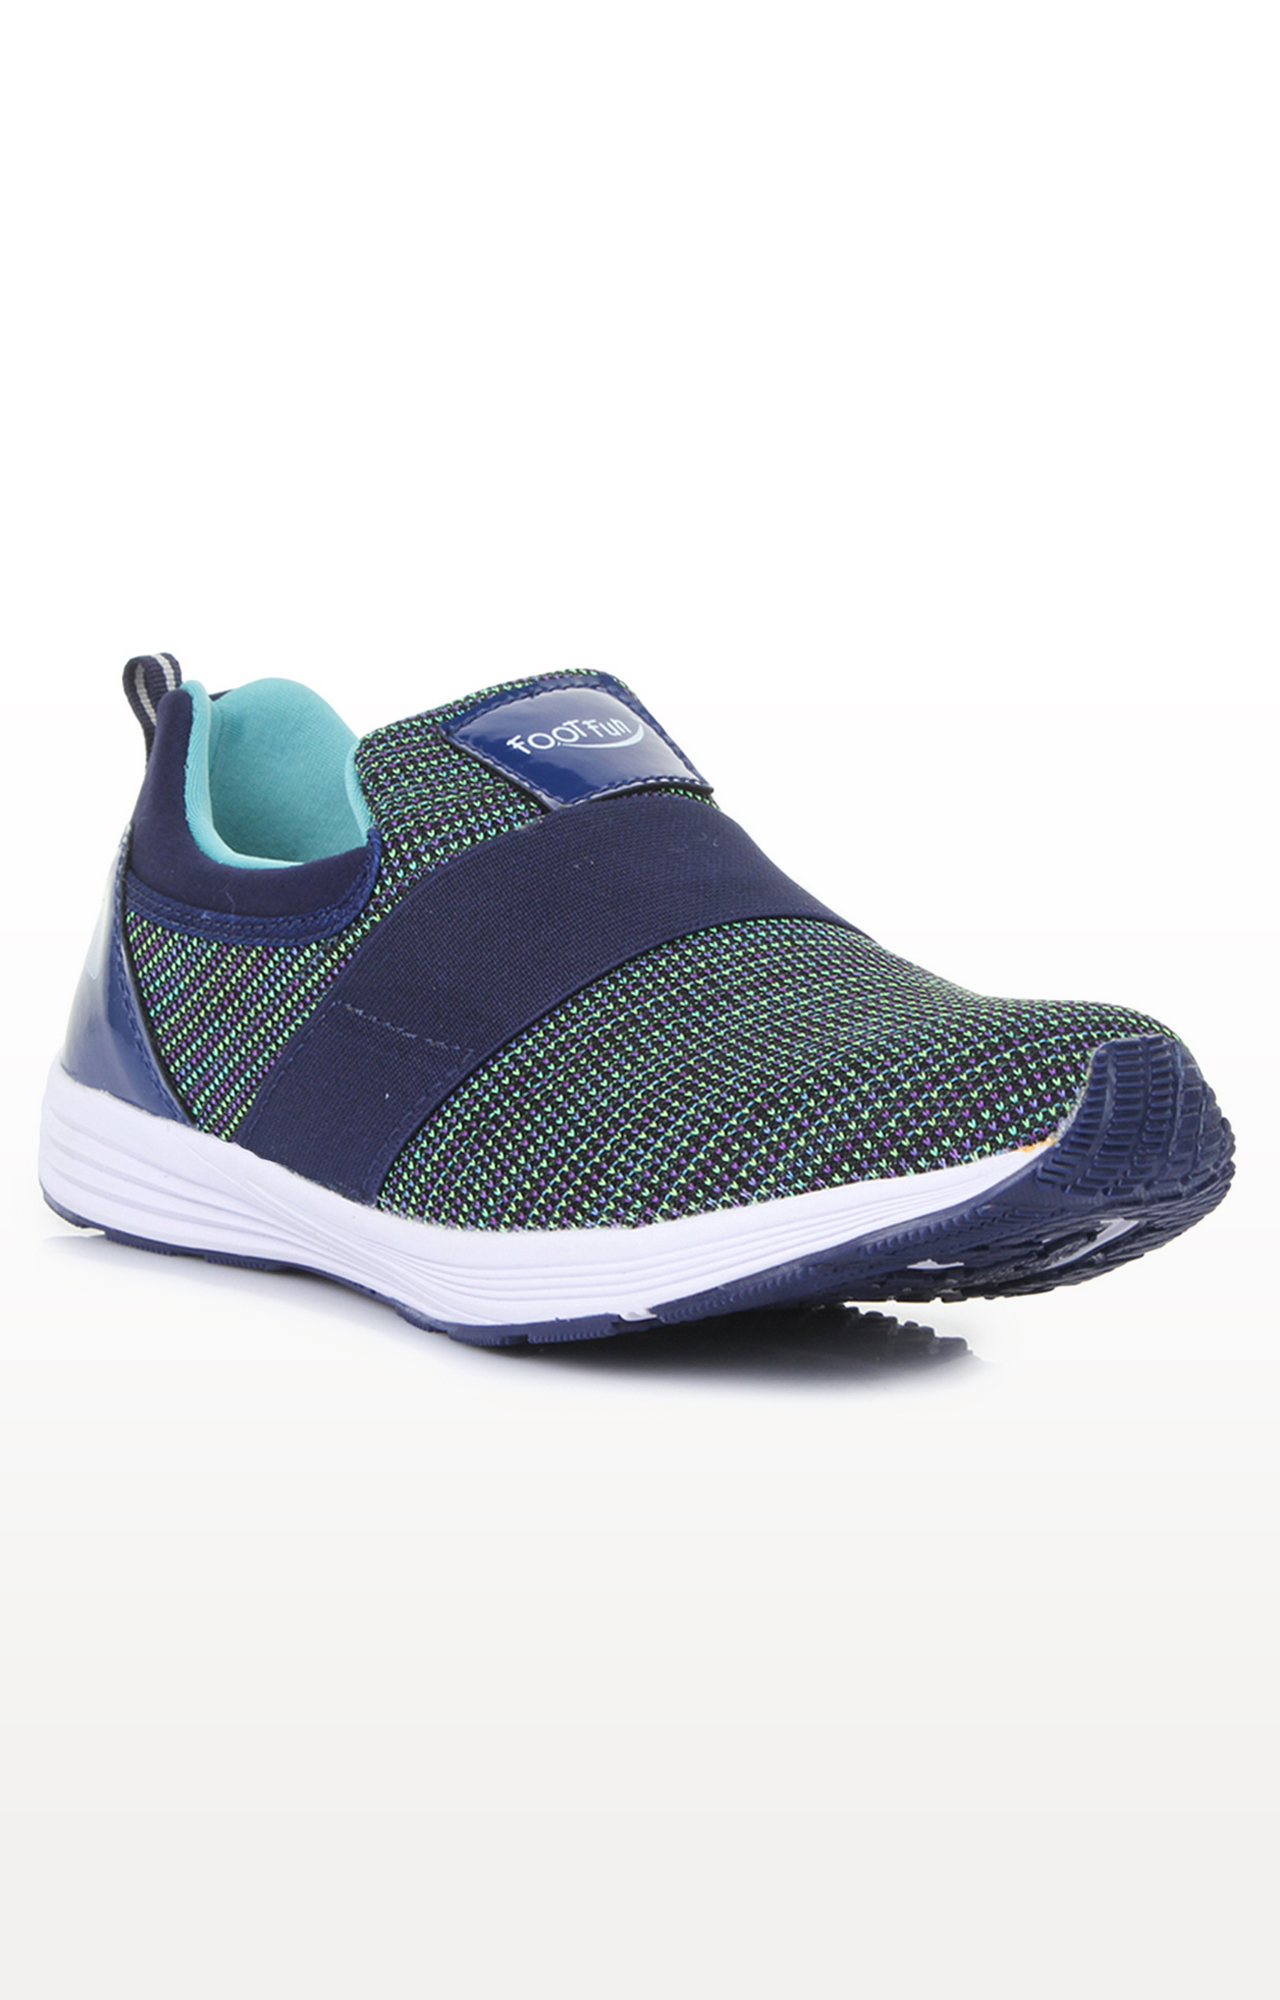 Liberty | Lucy & Luke by Liberty Green Indoor Sports Shoes